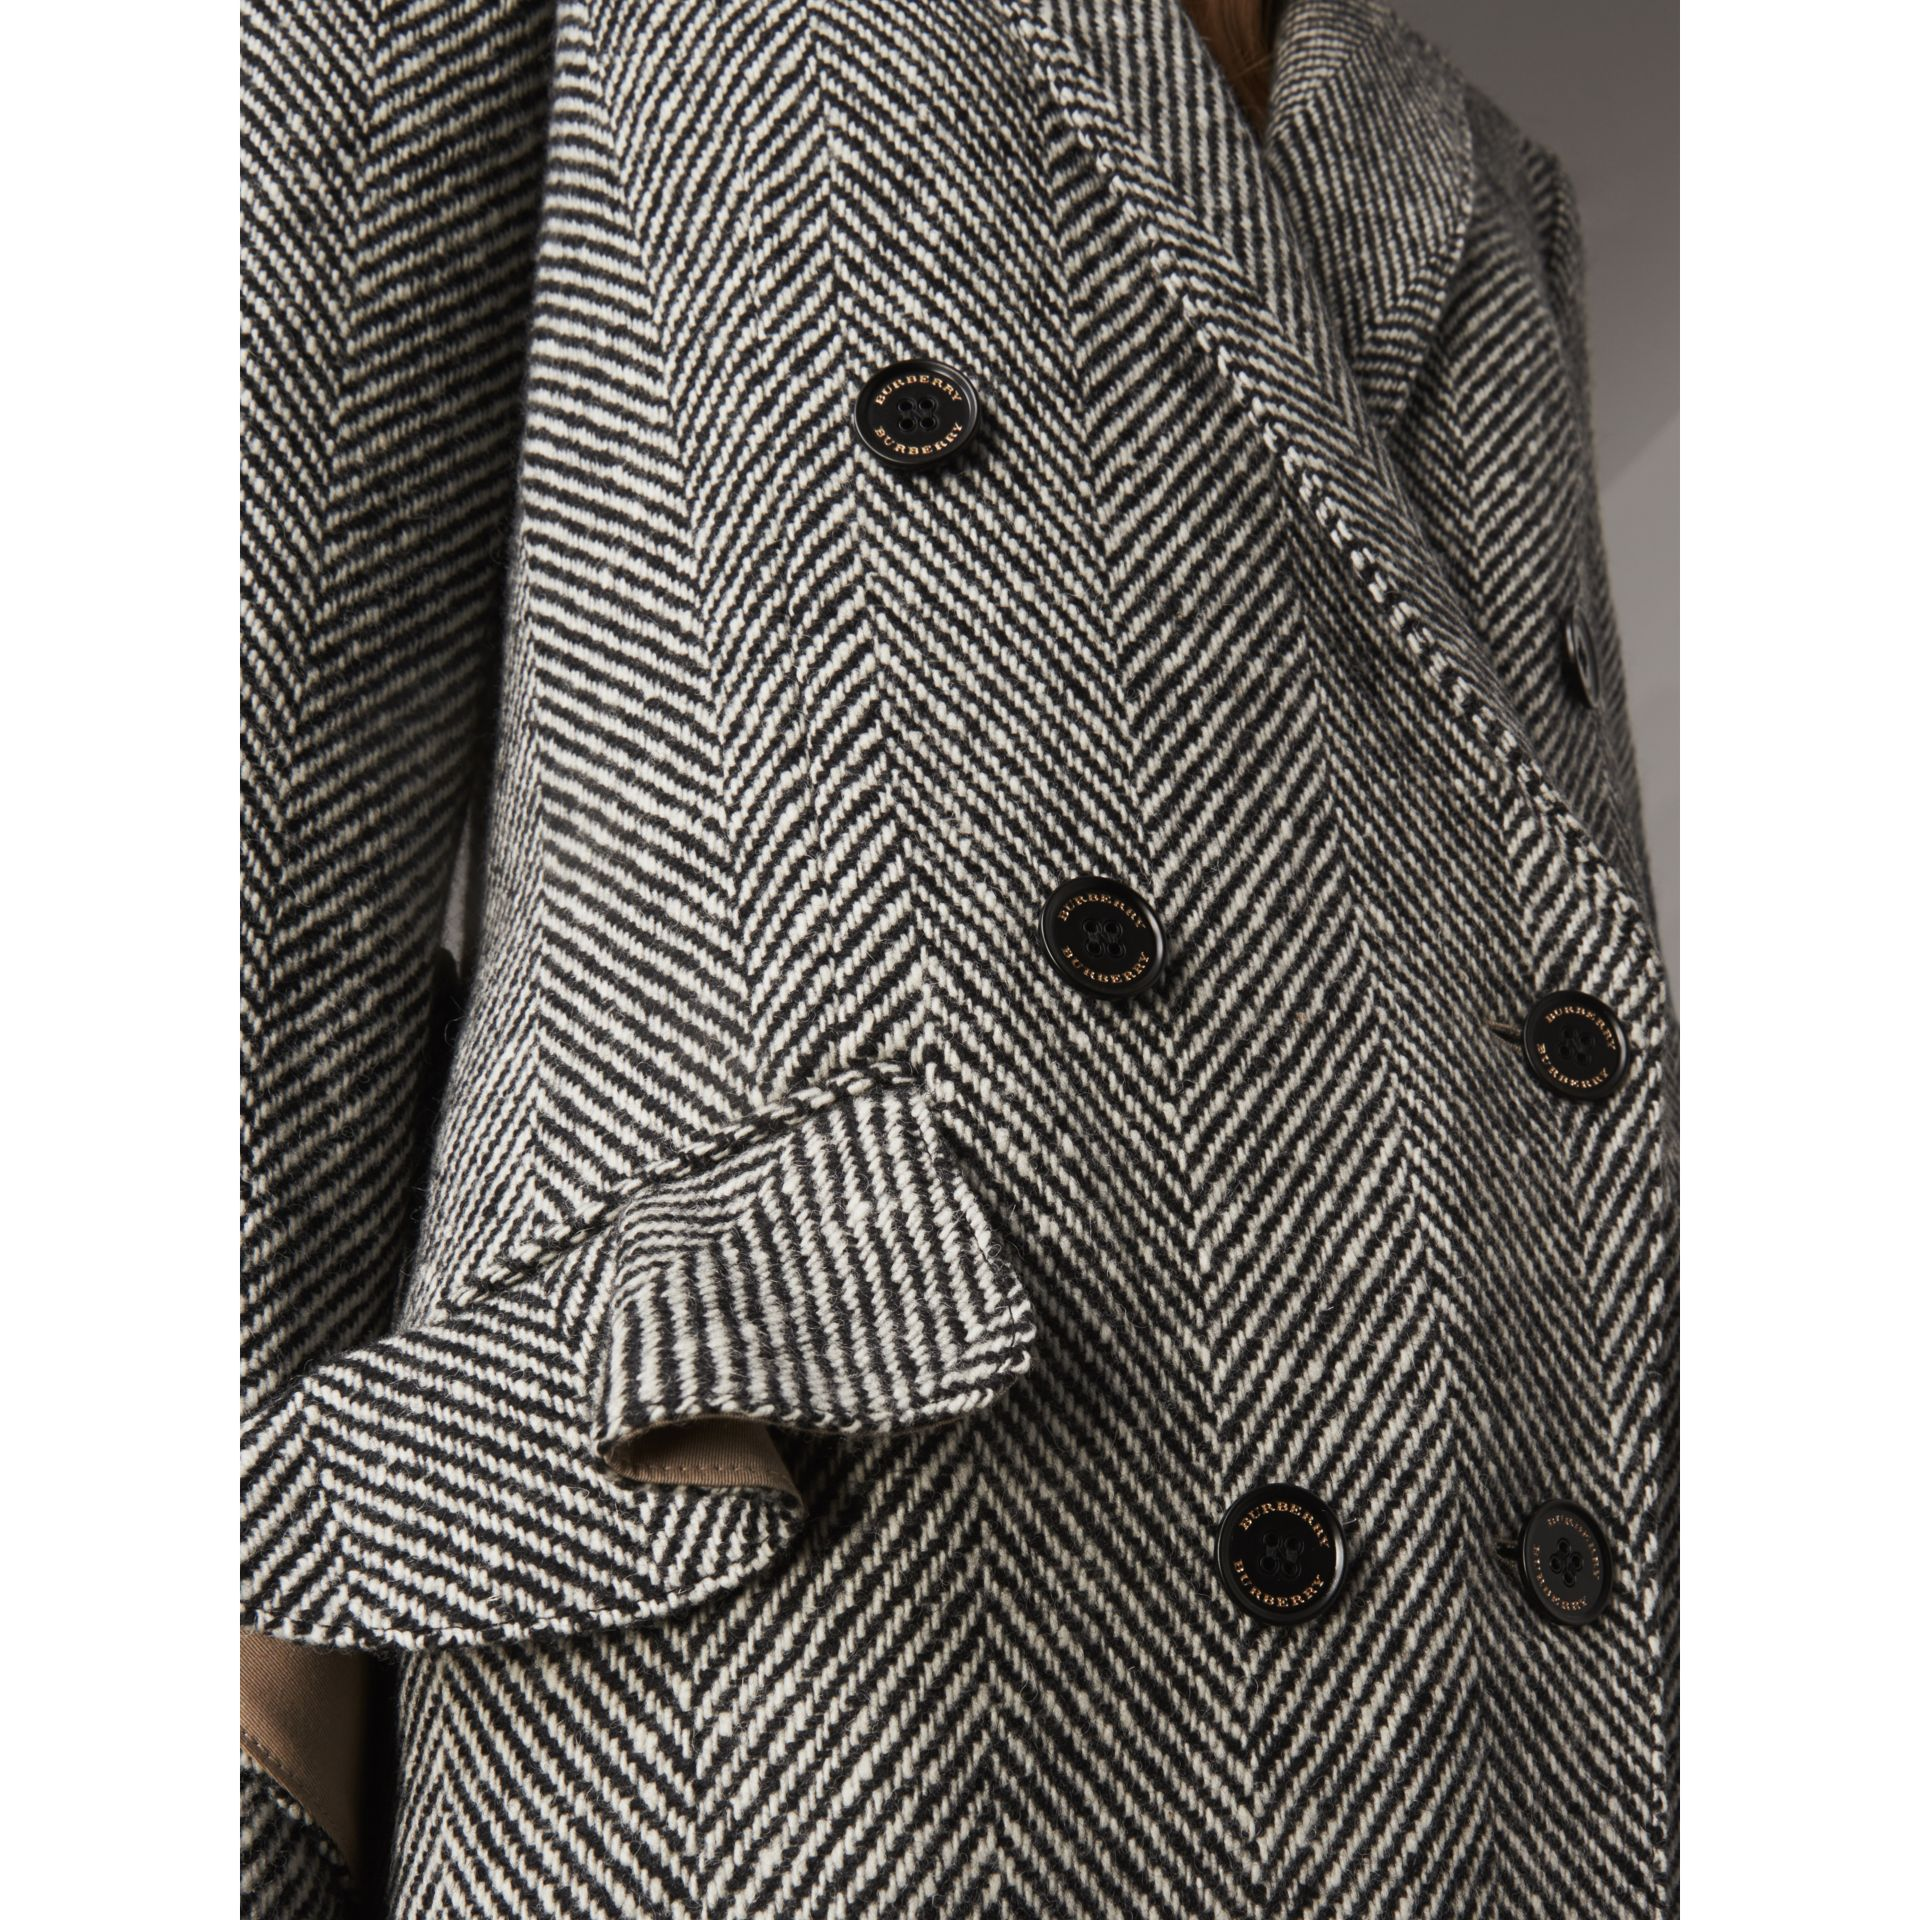 Manteau ajusté en tweed de laine de Donegal à chevrons - Femme | Burberry - photo de la galerie 5